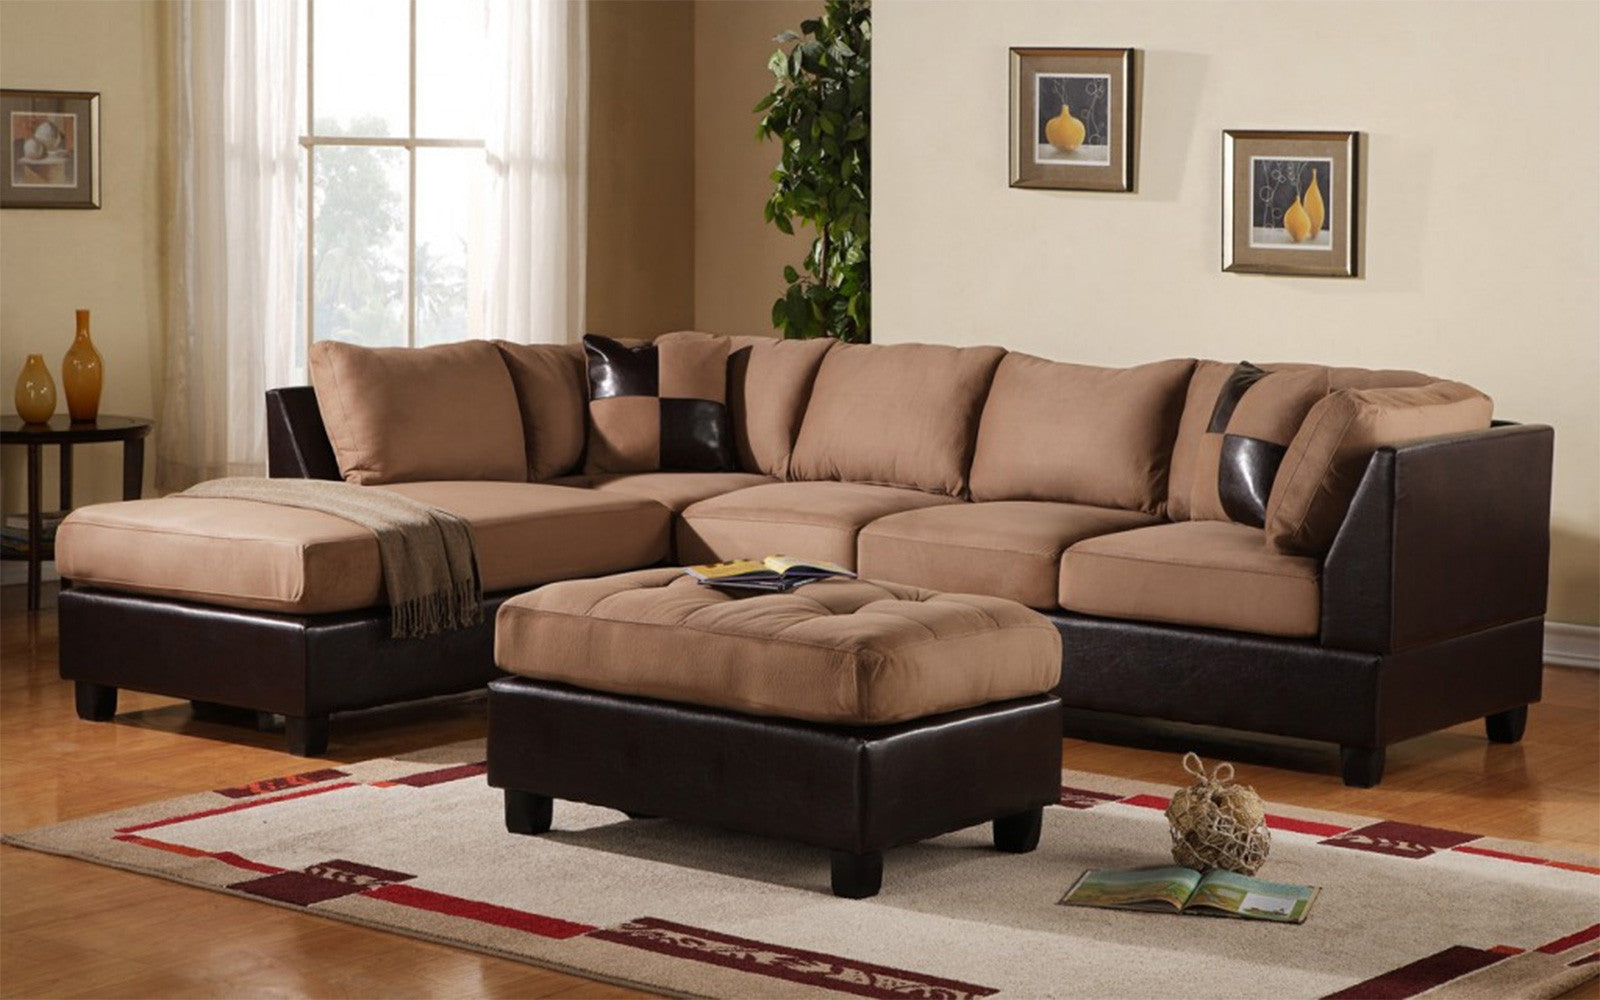 sectional loveseat gardner sofa at product edison white leather and bonded